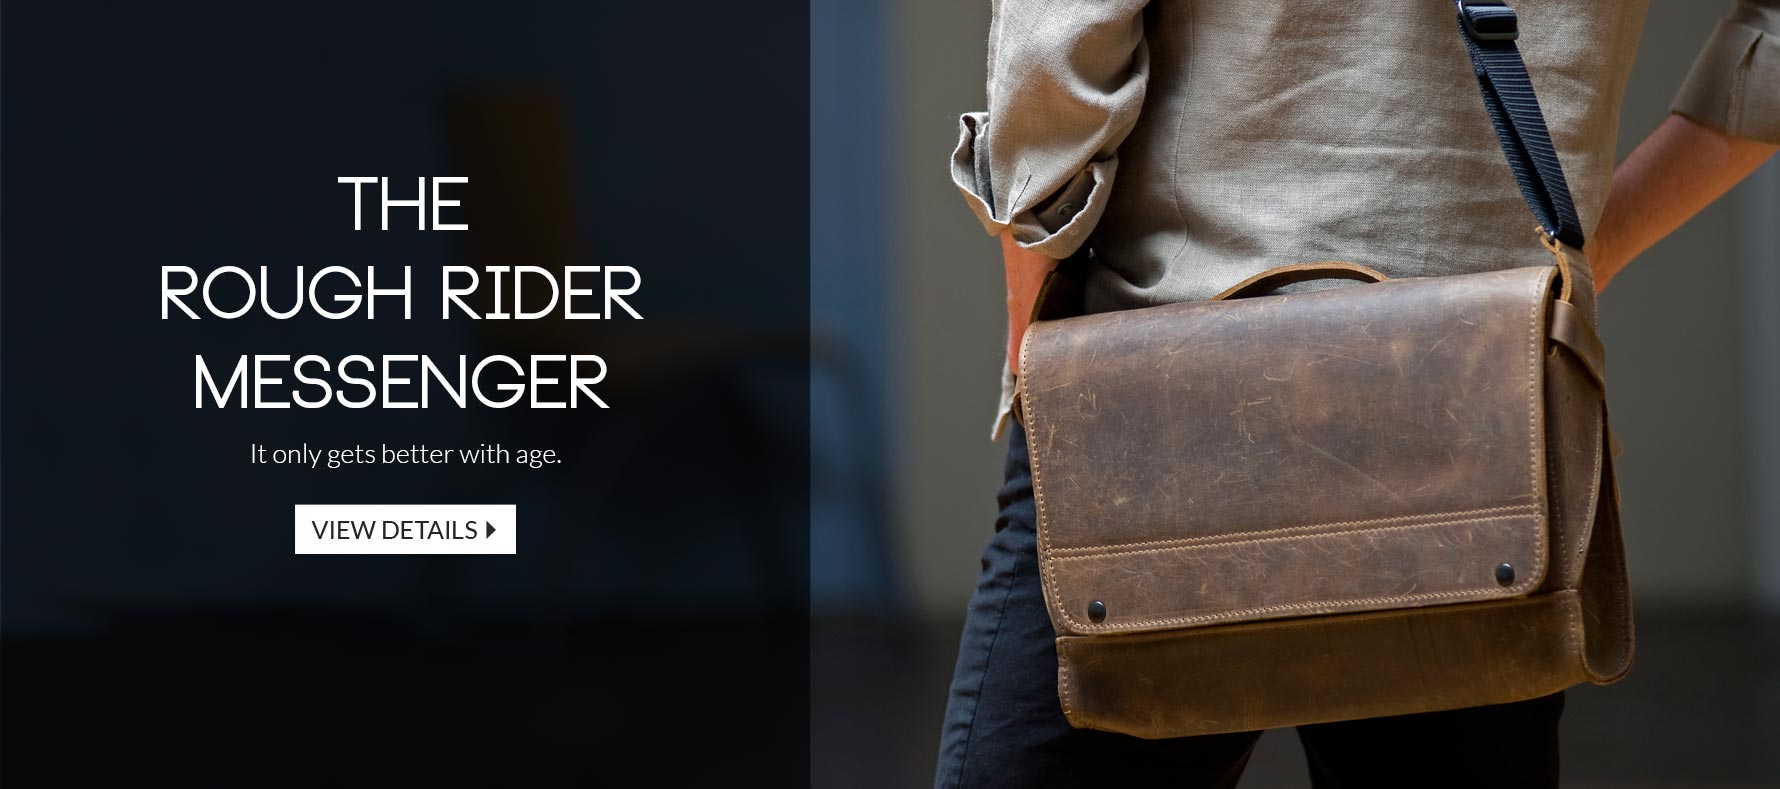 The Rough Rider Messenger